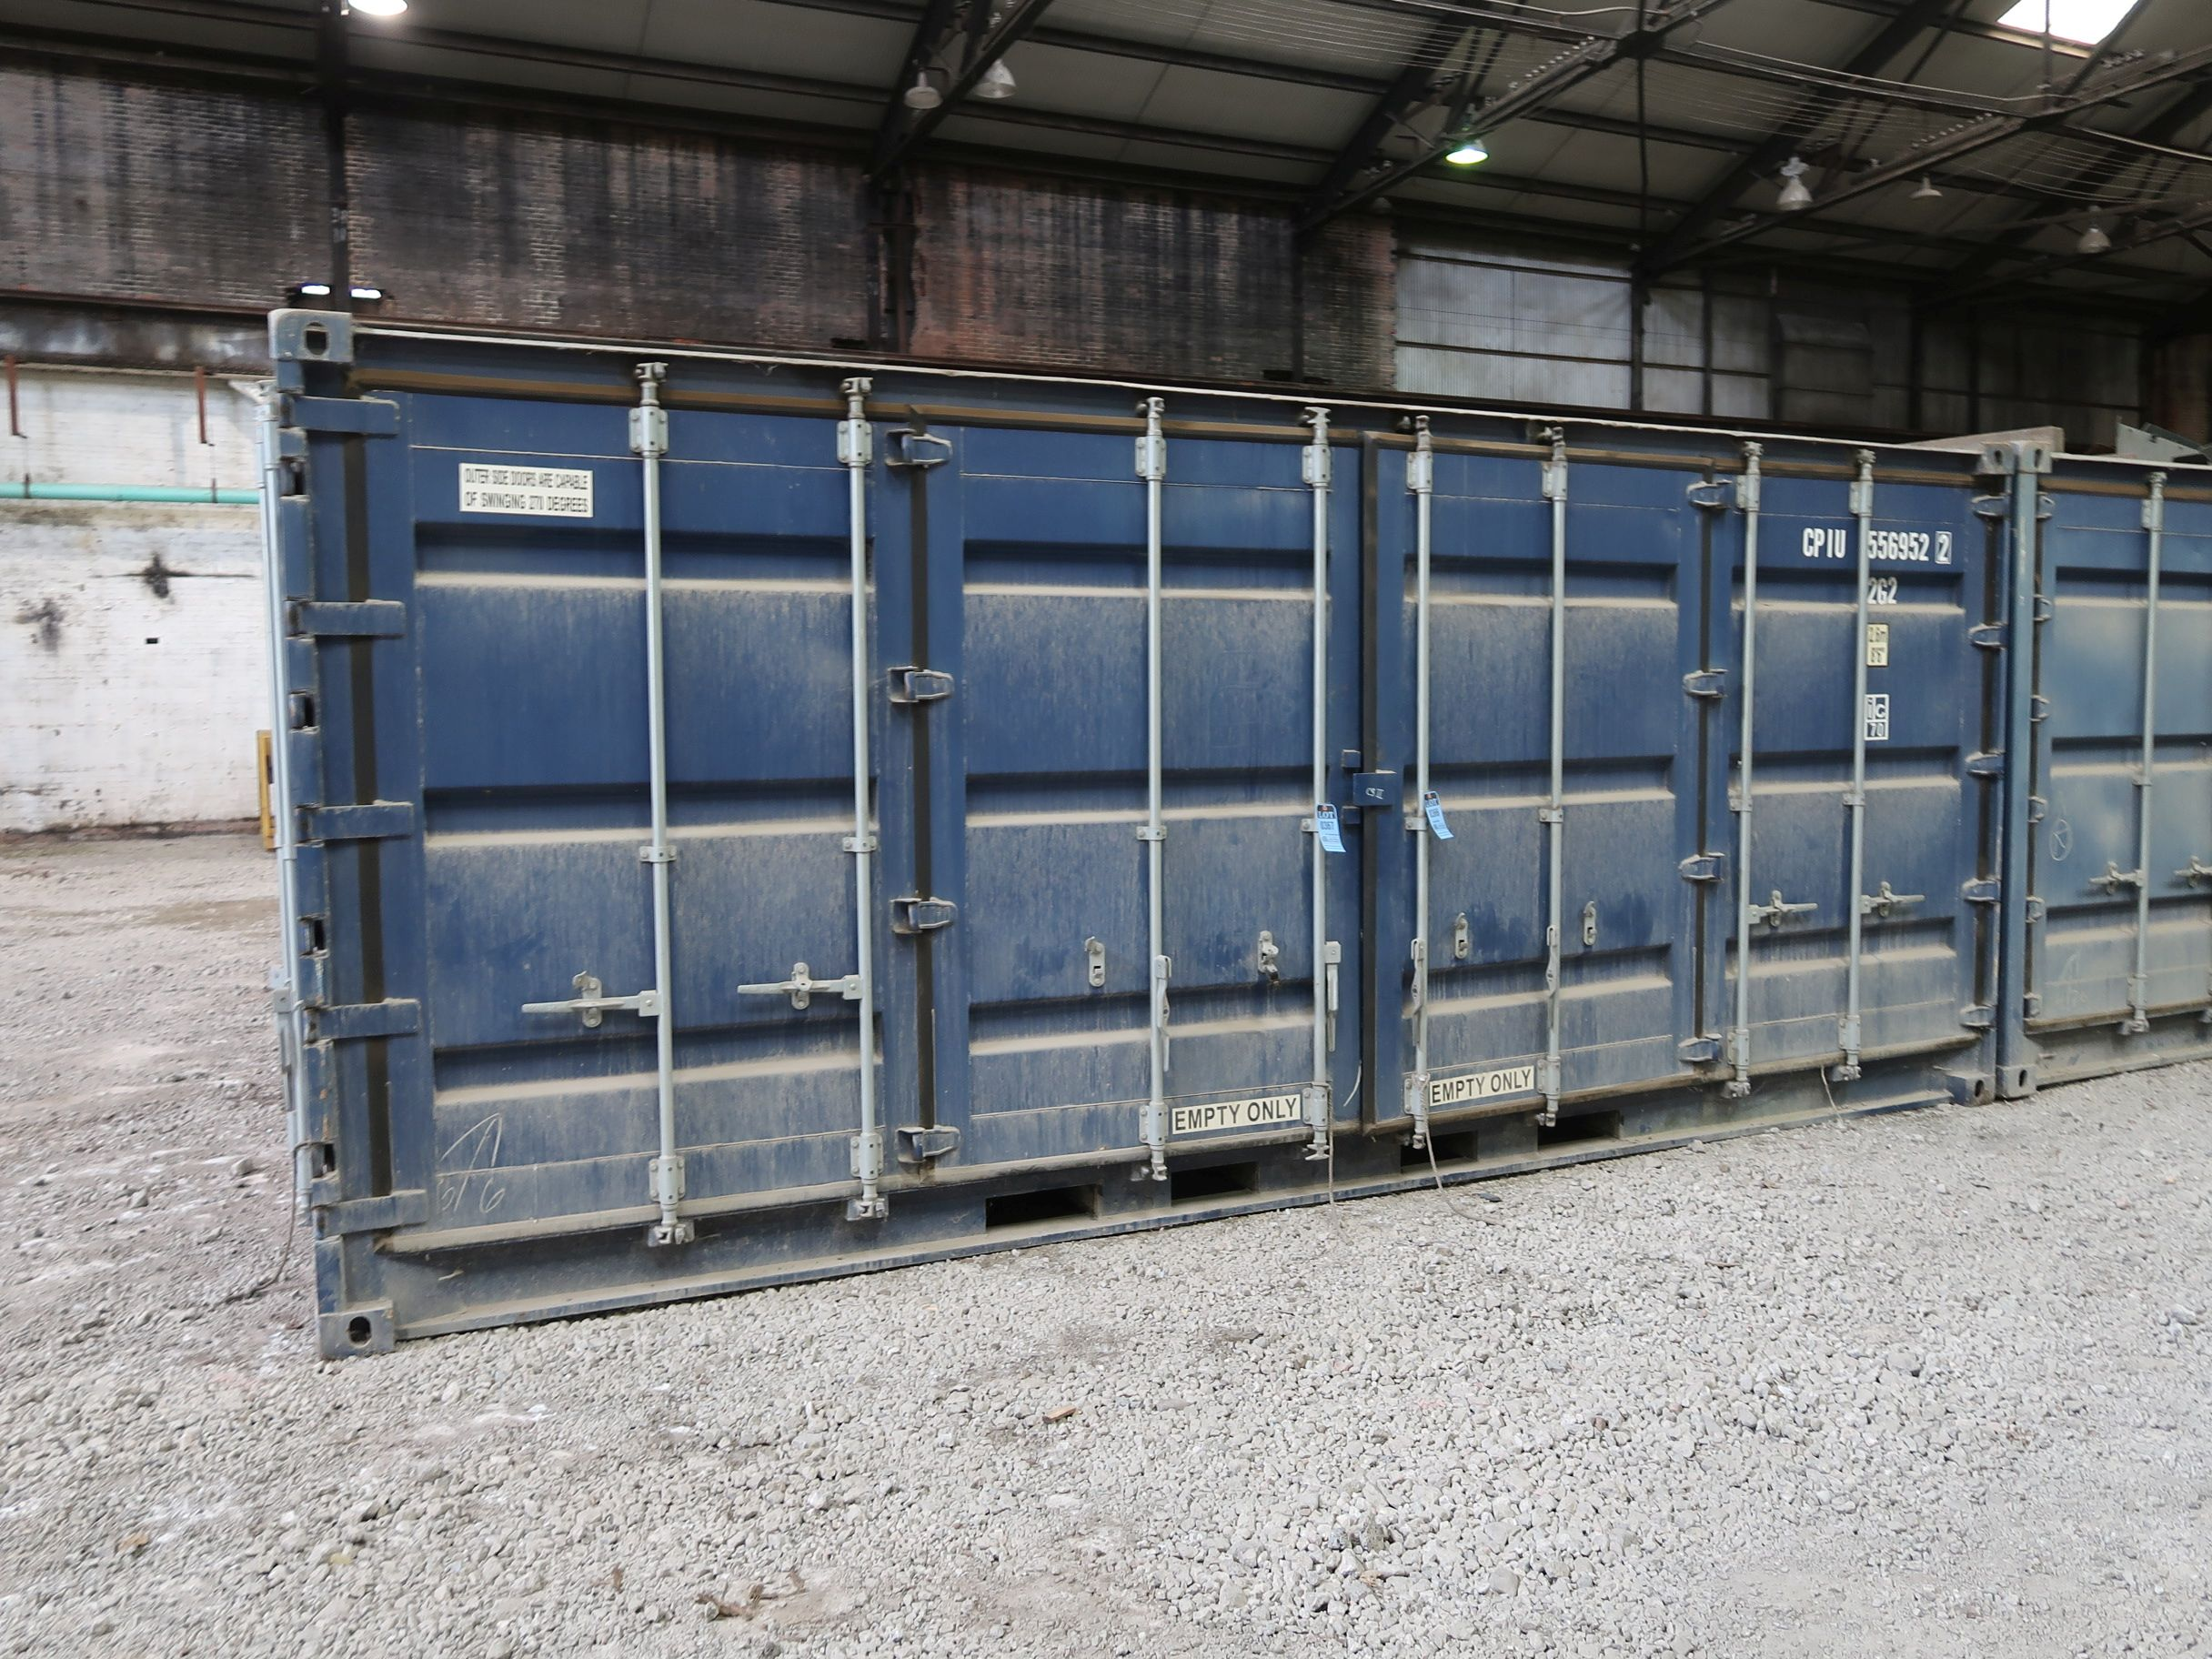 Lot 367 - 8' X 20' CONTAINER PROVIDERS INTL CONEX SHIPPING CONTAINER, 1094 CU. FT. STANDARD END DOOR AND